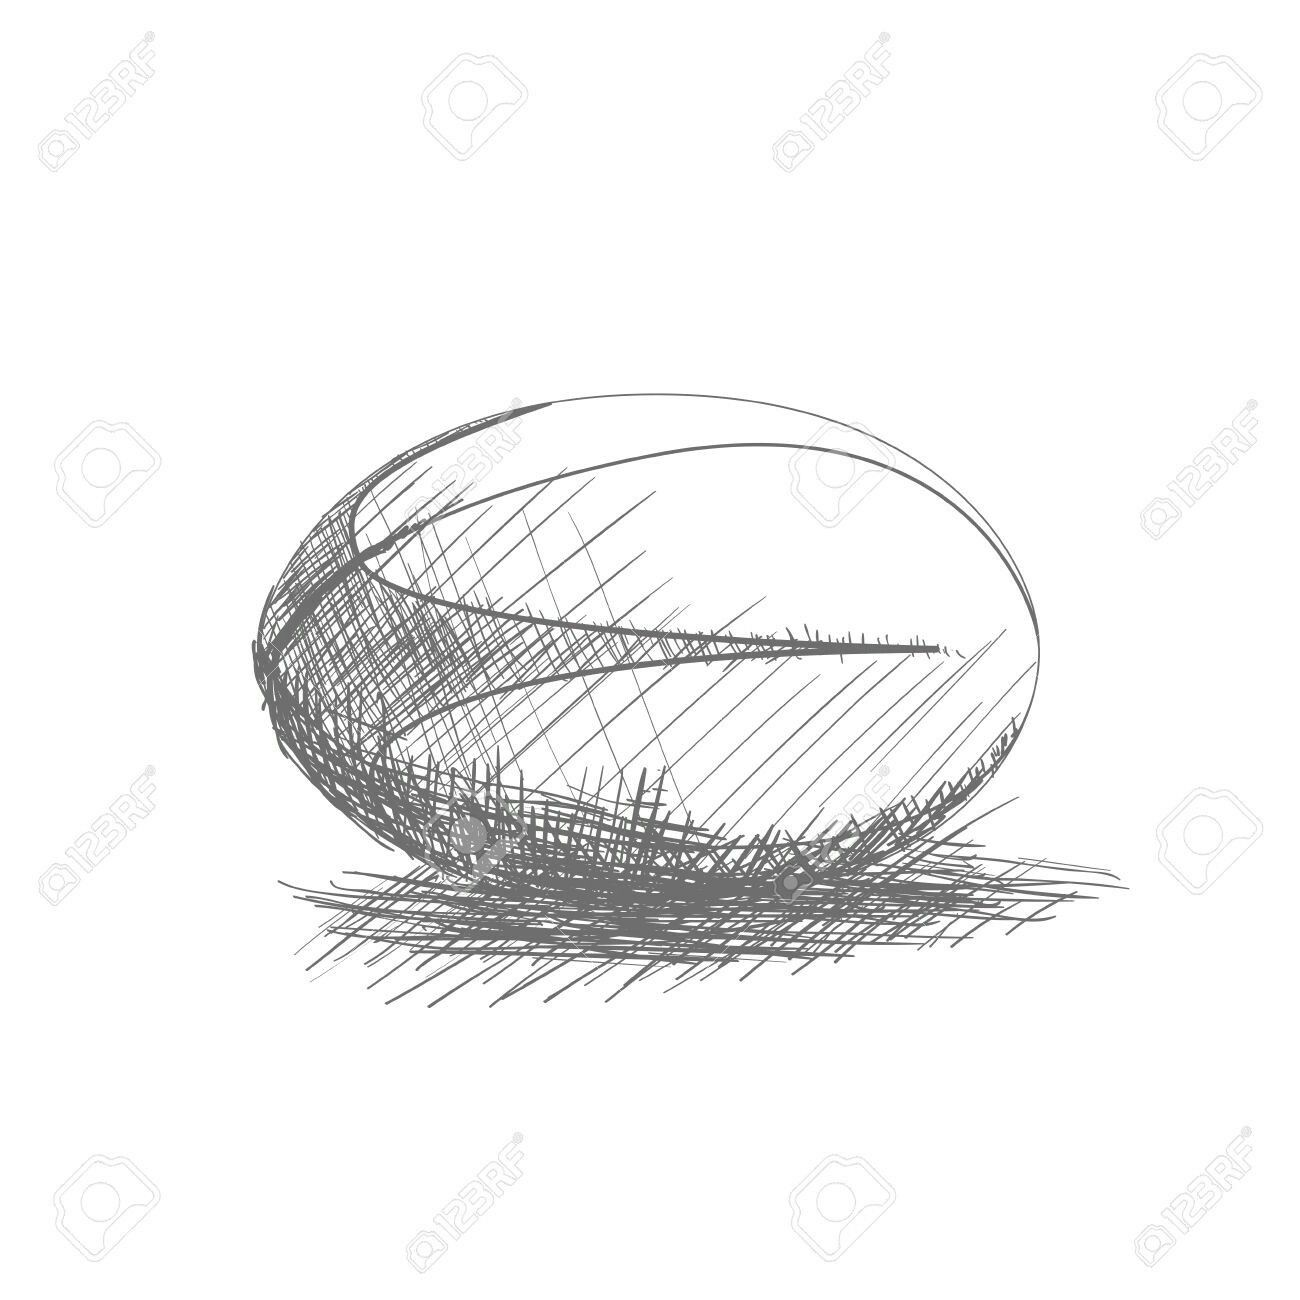 Rugby Ball Repost By Pulseroll The Leaders In Vibrating Training Recovery Products Https Pulseroll Com Tatouage Rugby Dessin Rugby Dessin